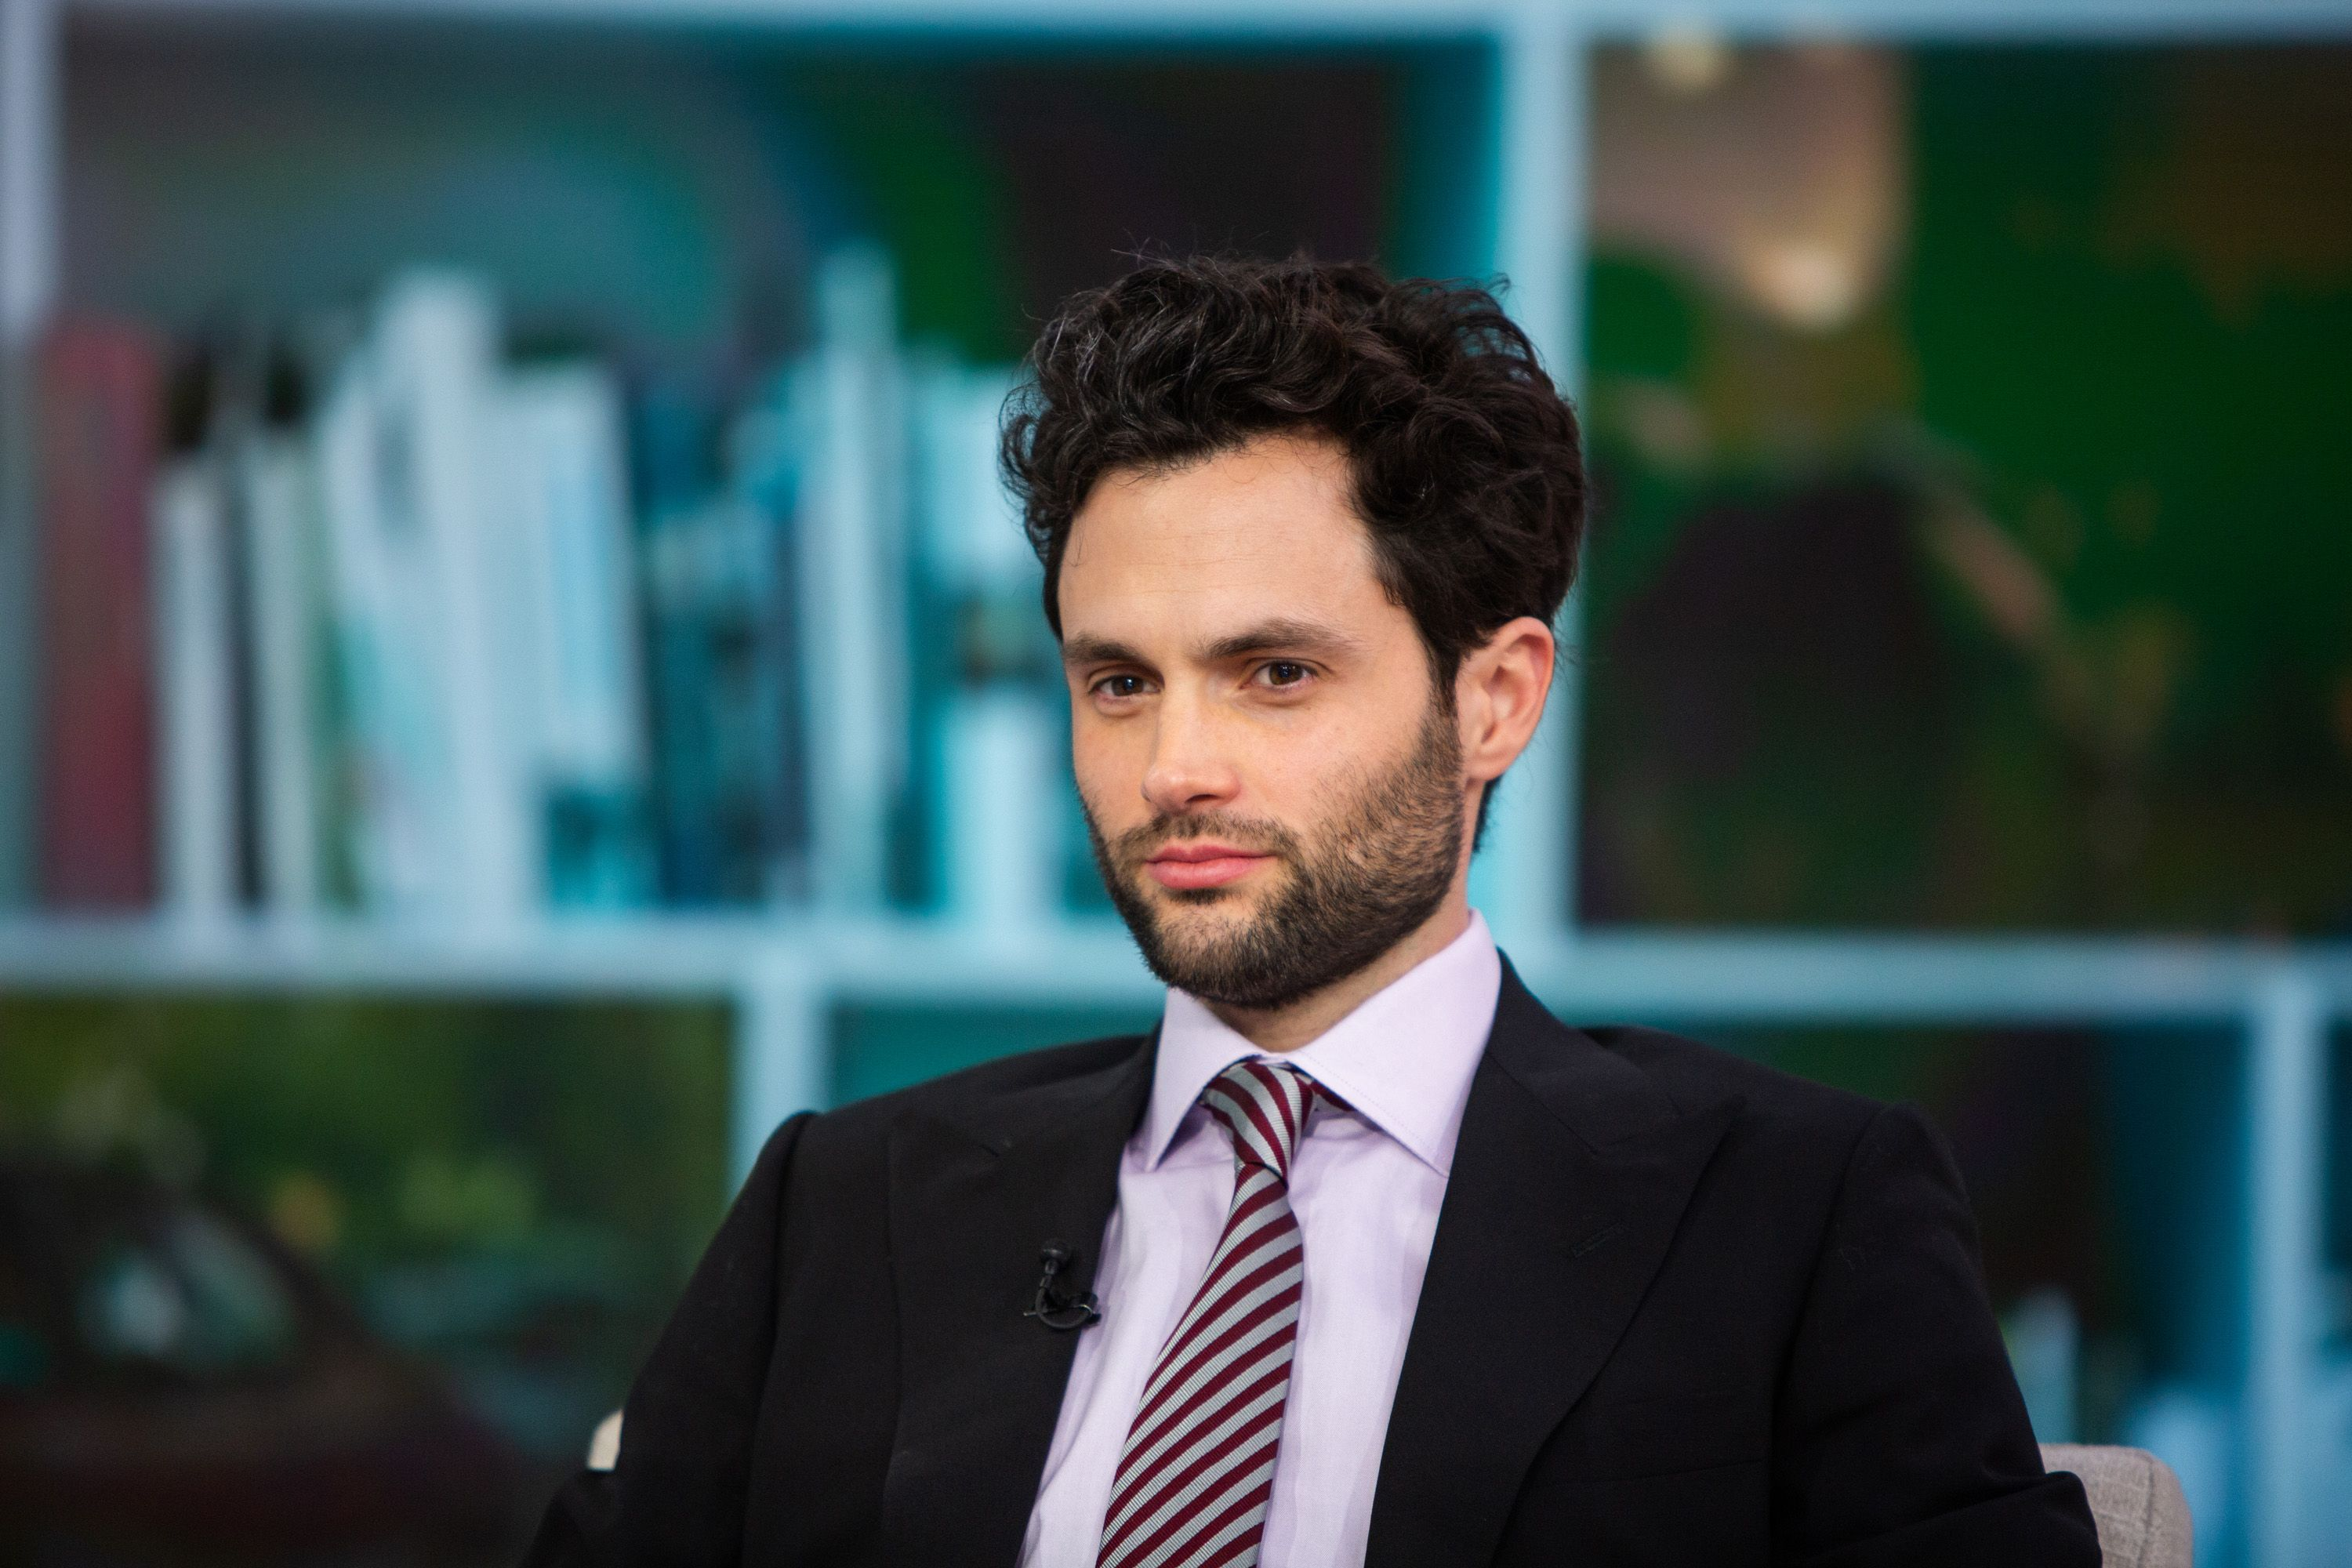 Penn Badgley looks amazing in black suit with lilac inner T-shirt and stripes tie to match.